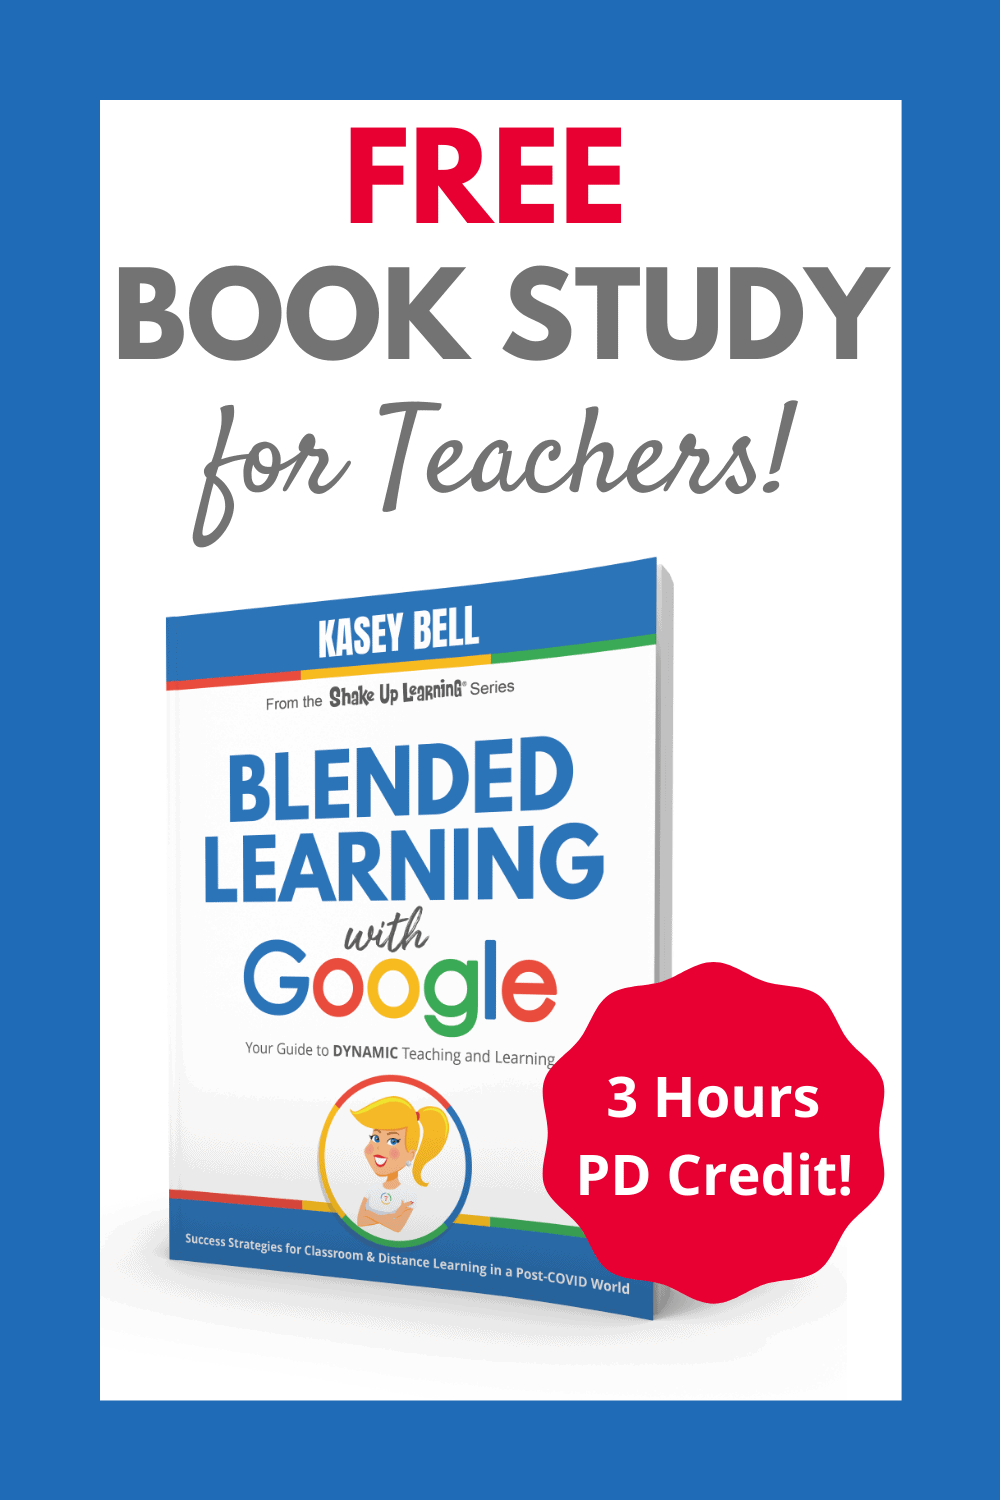 Join the Blended Learning with Google Book Study! (FREE)